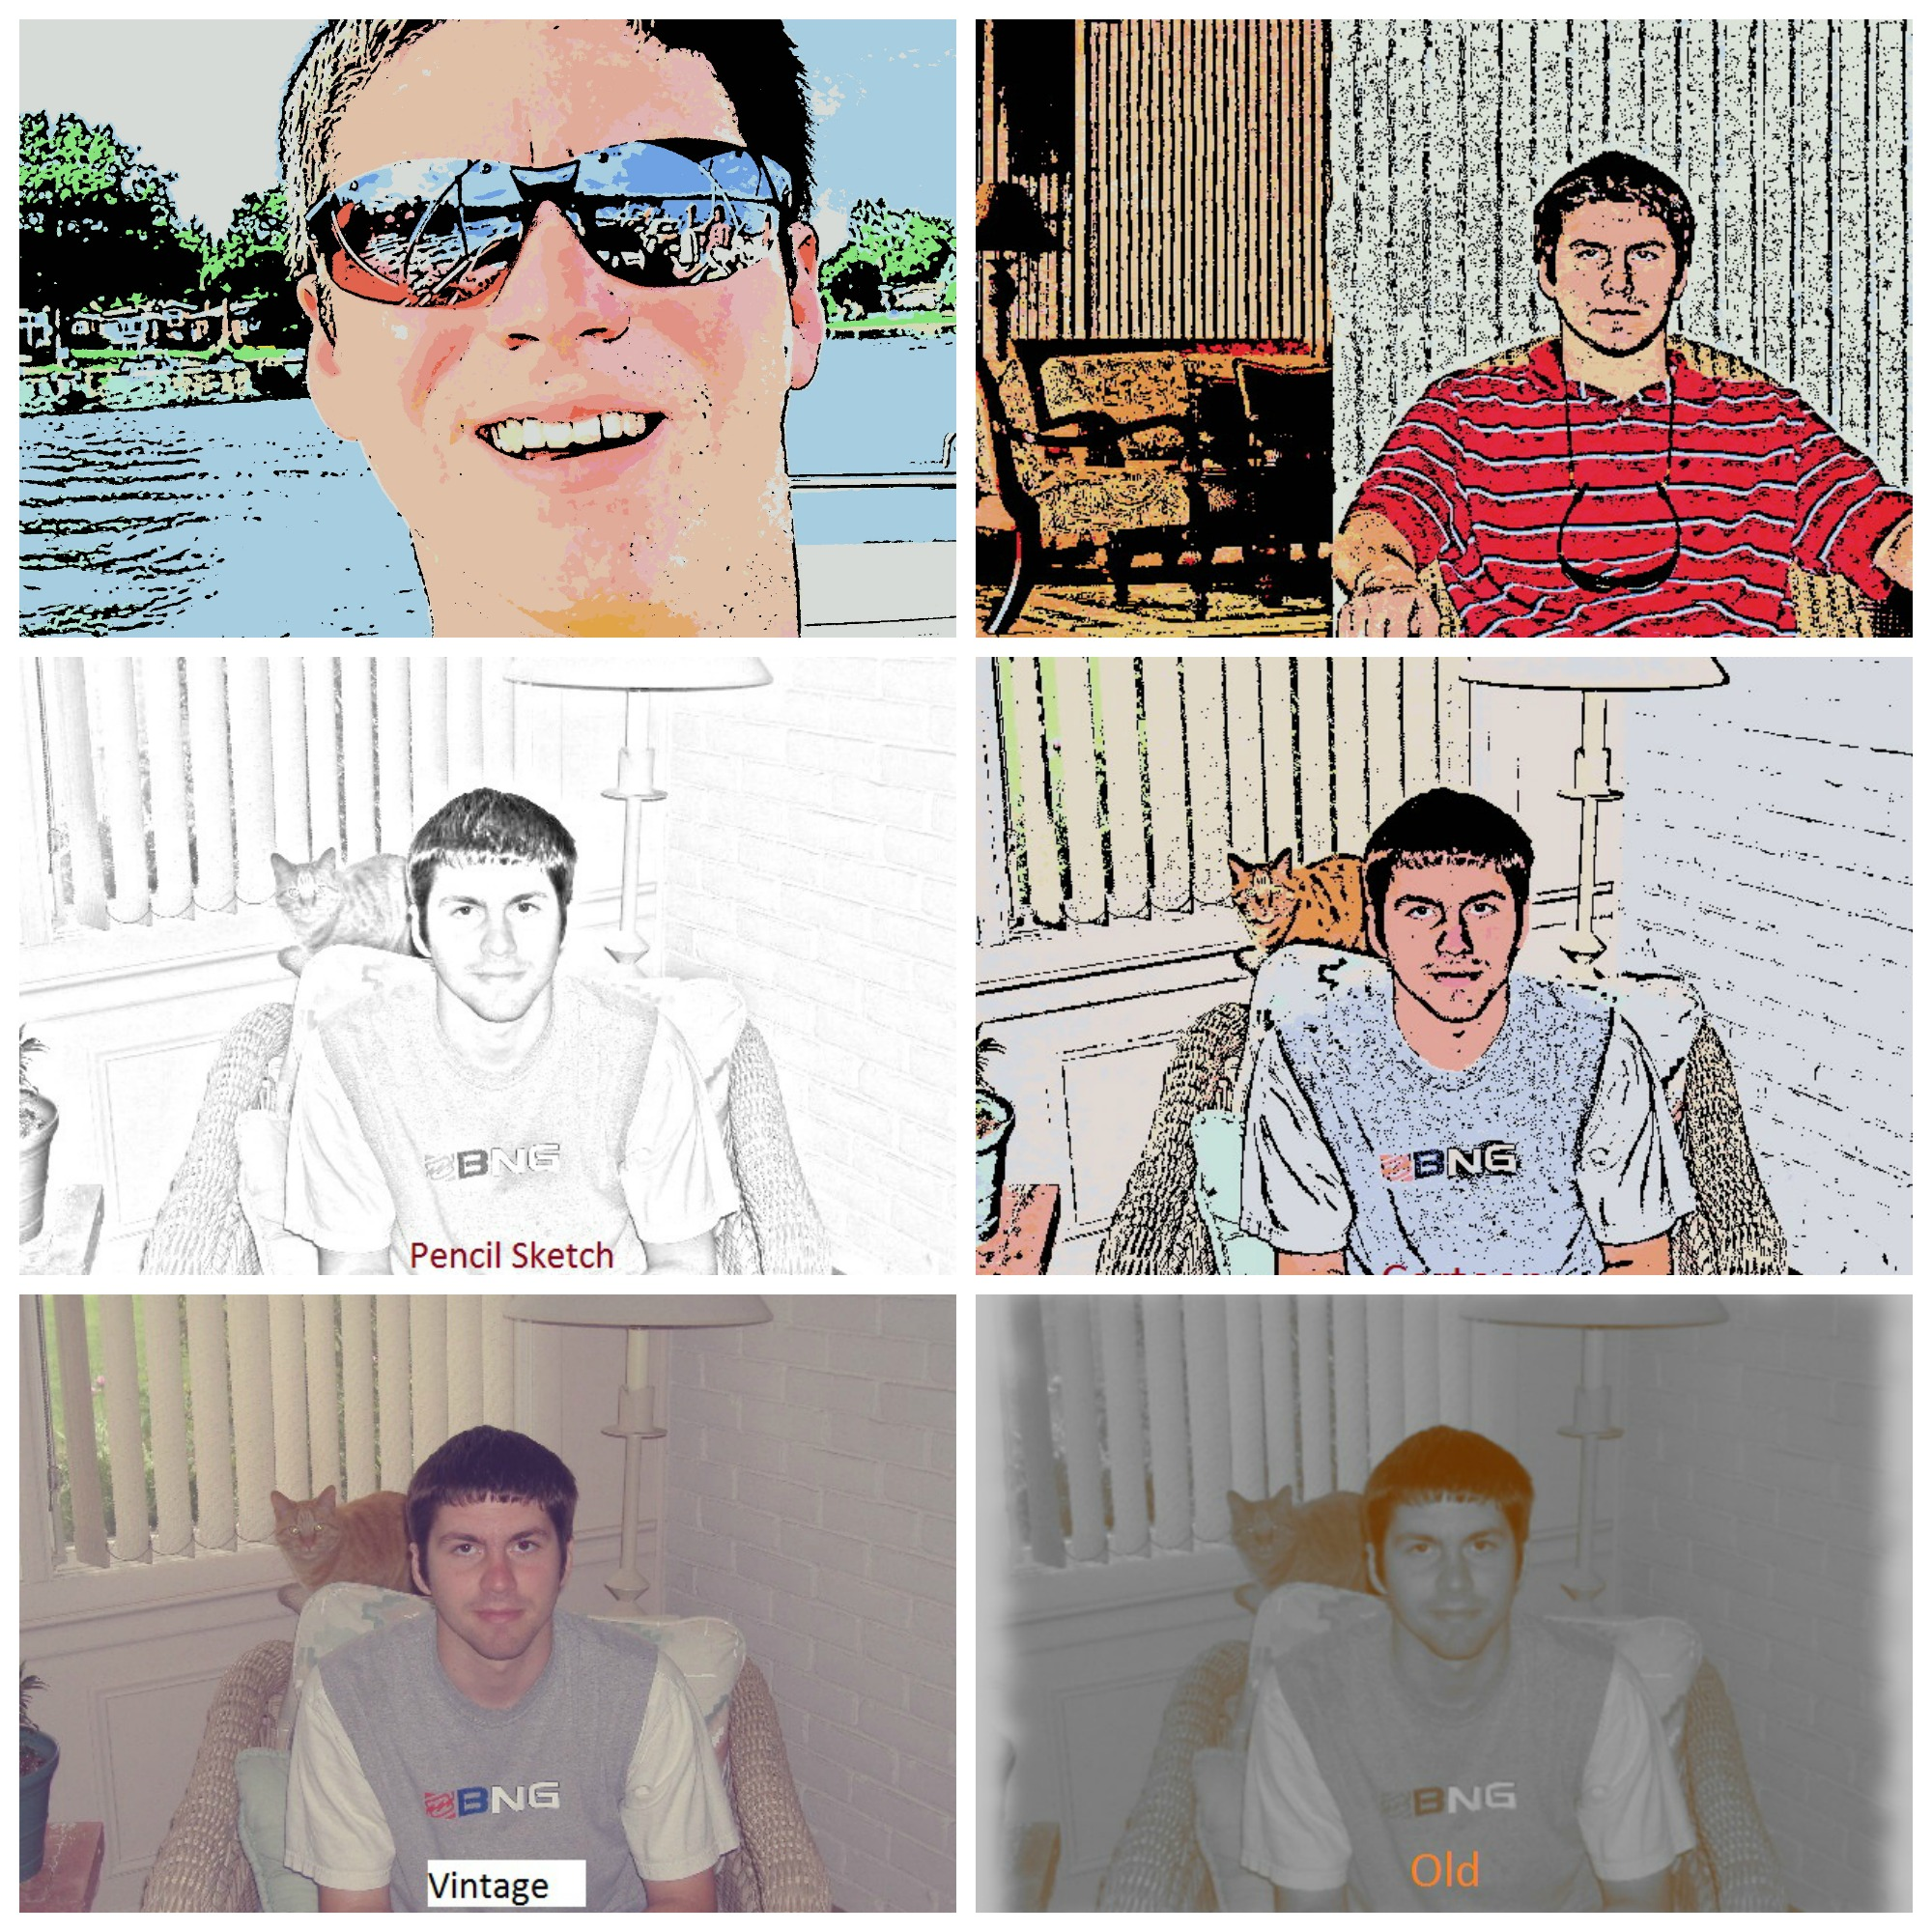 create various effects for photos of your choice